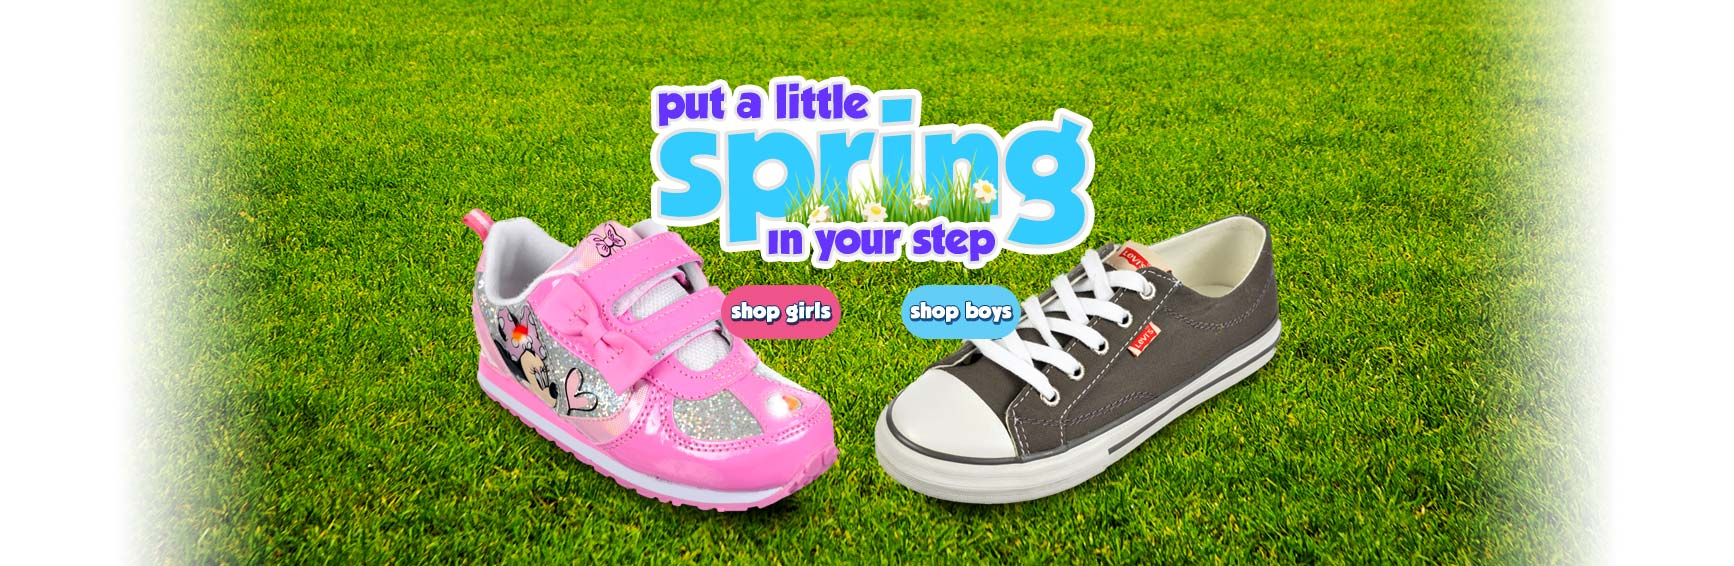 Put a Little Spring in Your Step - Shop Boys and Girls Shoes